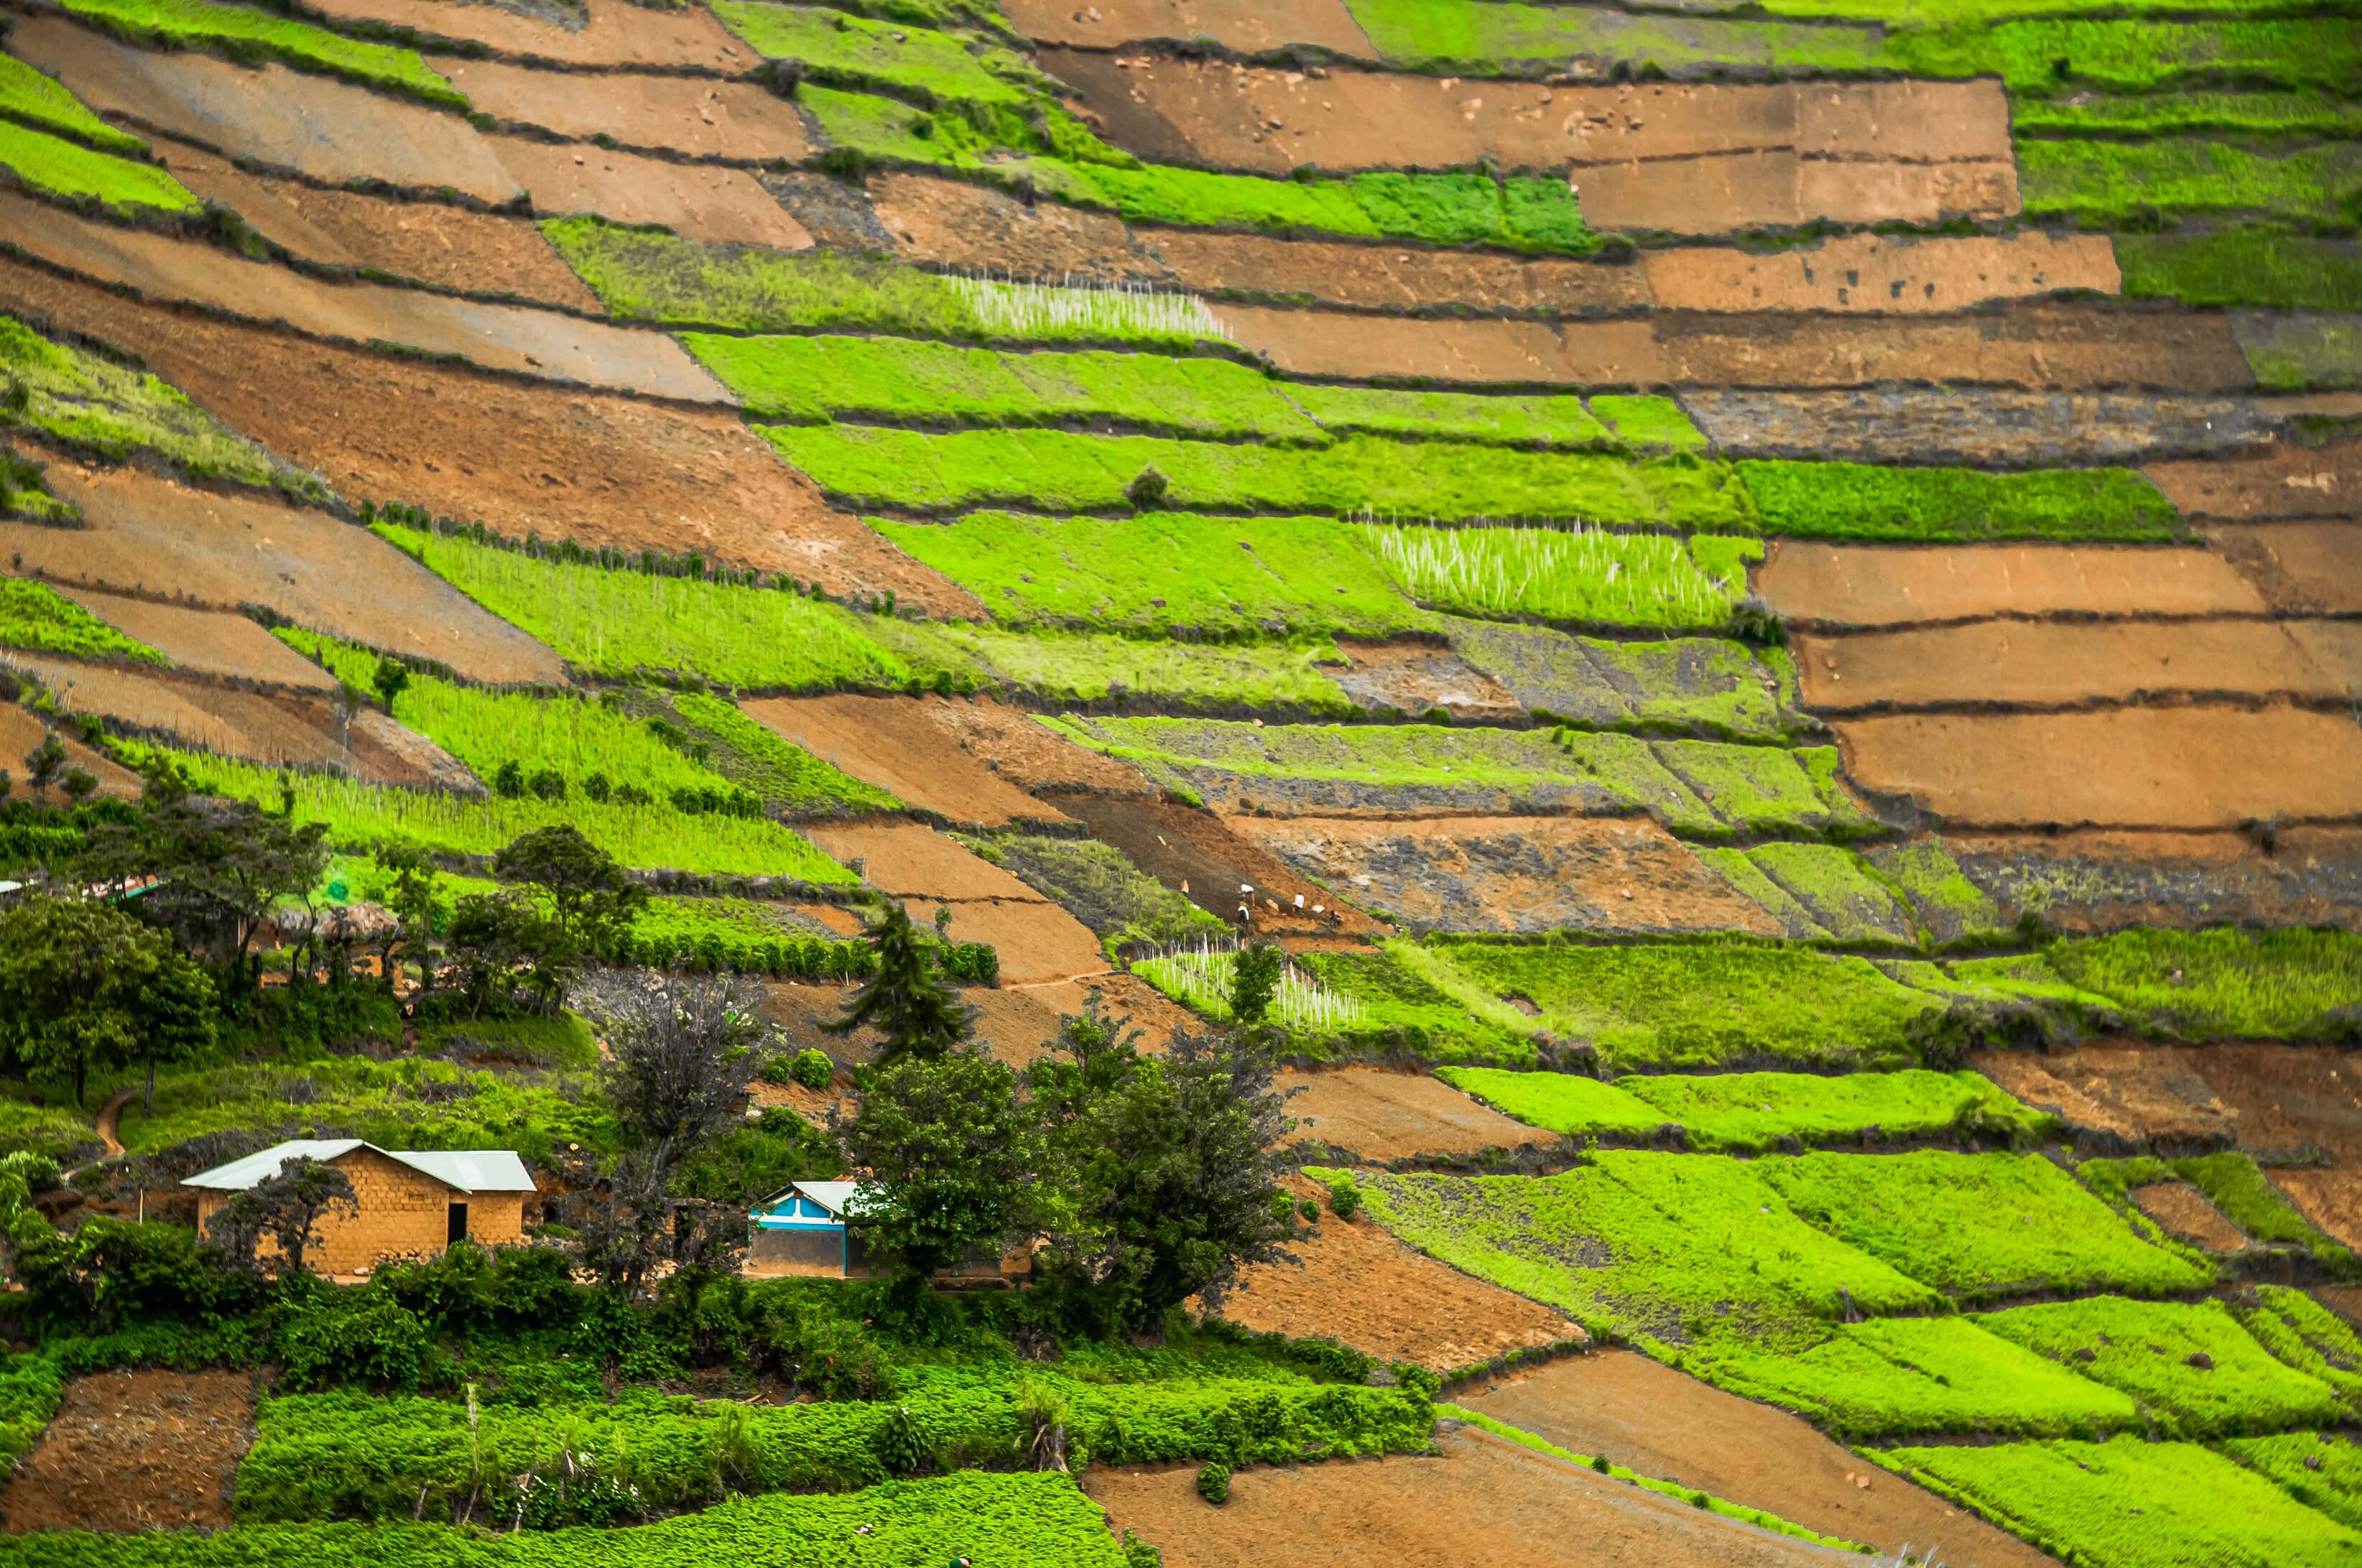 The typpical landscape of the Kabale District in Southern Uganda with homesteads within worked plots of land against the fertile hills from below to right at the top of the hills.